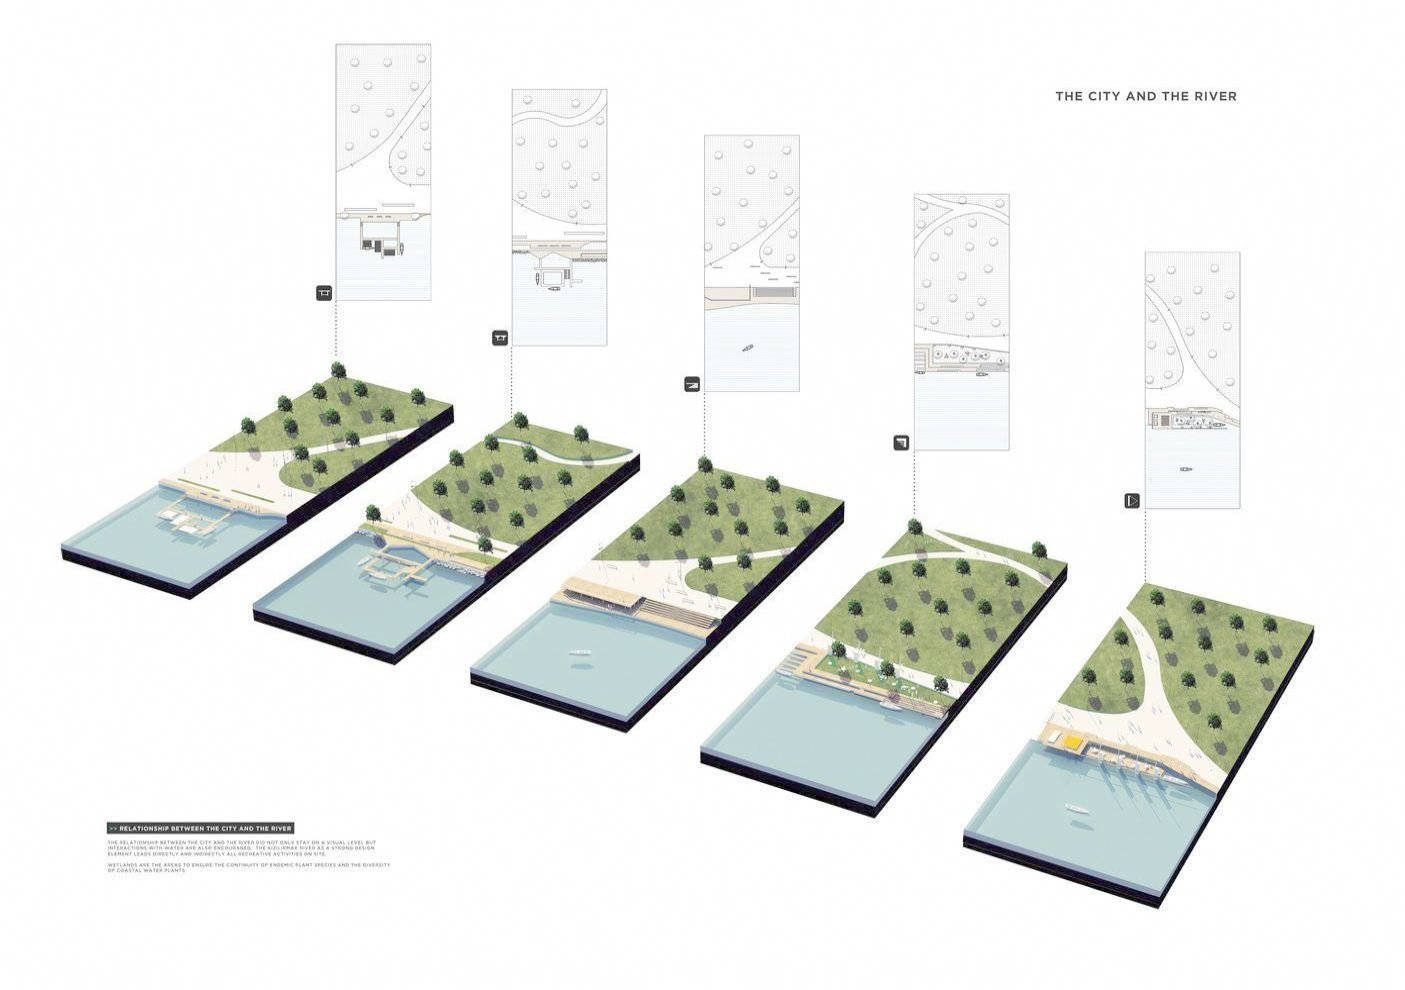 Landscape Gardening Course this Landscape Architecture Concept Diagrams after La...